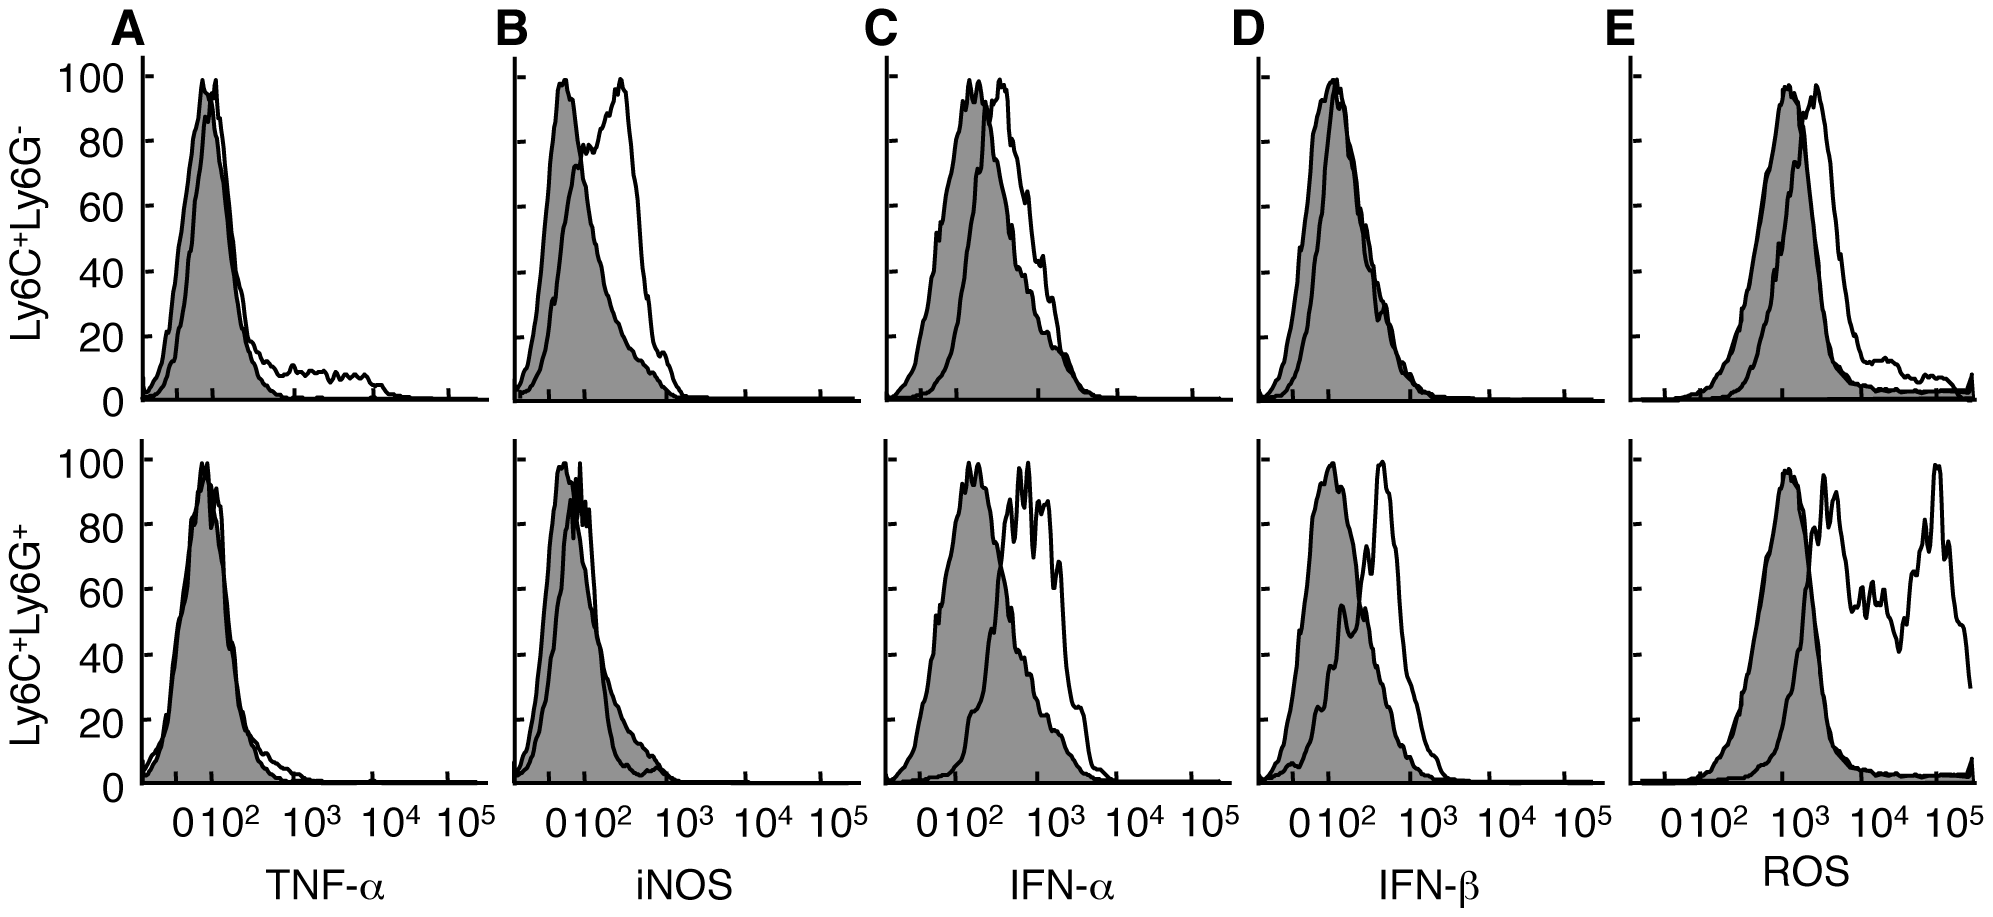 Ly6C<sup><b>+</b></sup>Ly6G<sup>-</sup> and Ly6C<sup><b>+</b></sup>Ly6G<sup><b>+</b></sup> cells have distinct functional profiles.